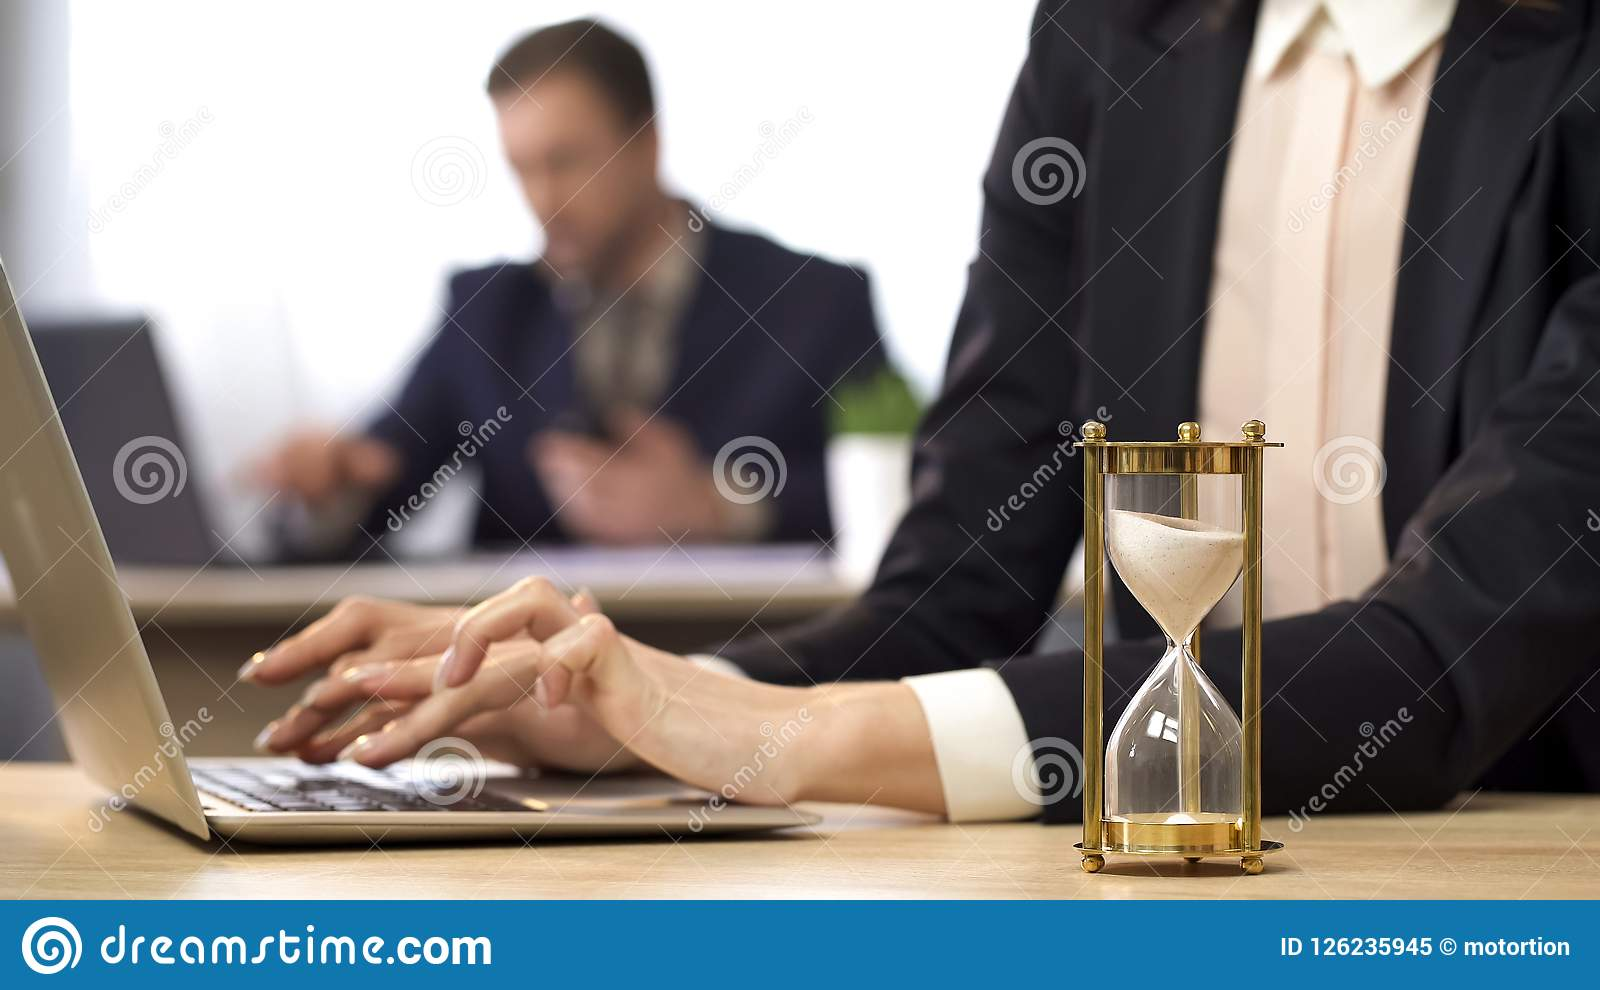 Businesswoman working on computer, hourglass trickling, outcome anticipation